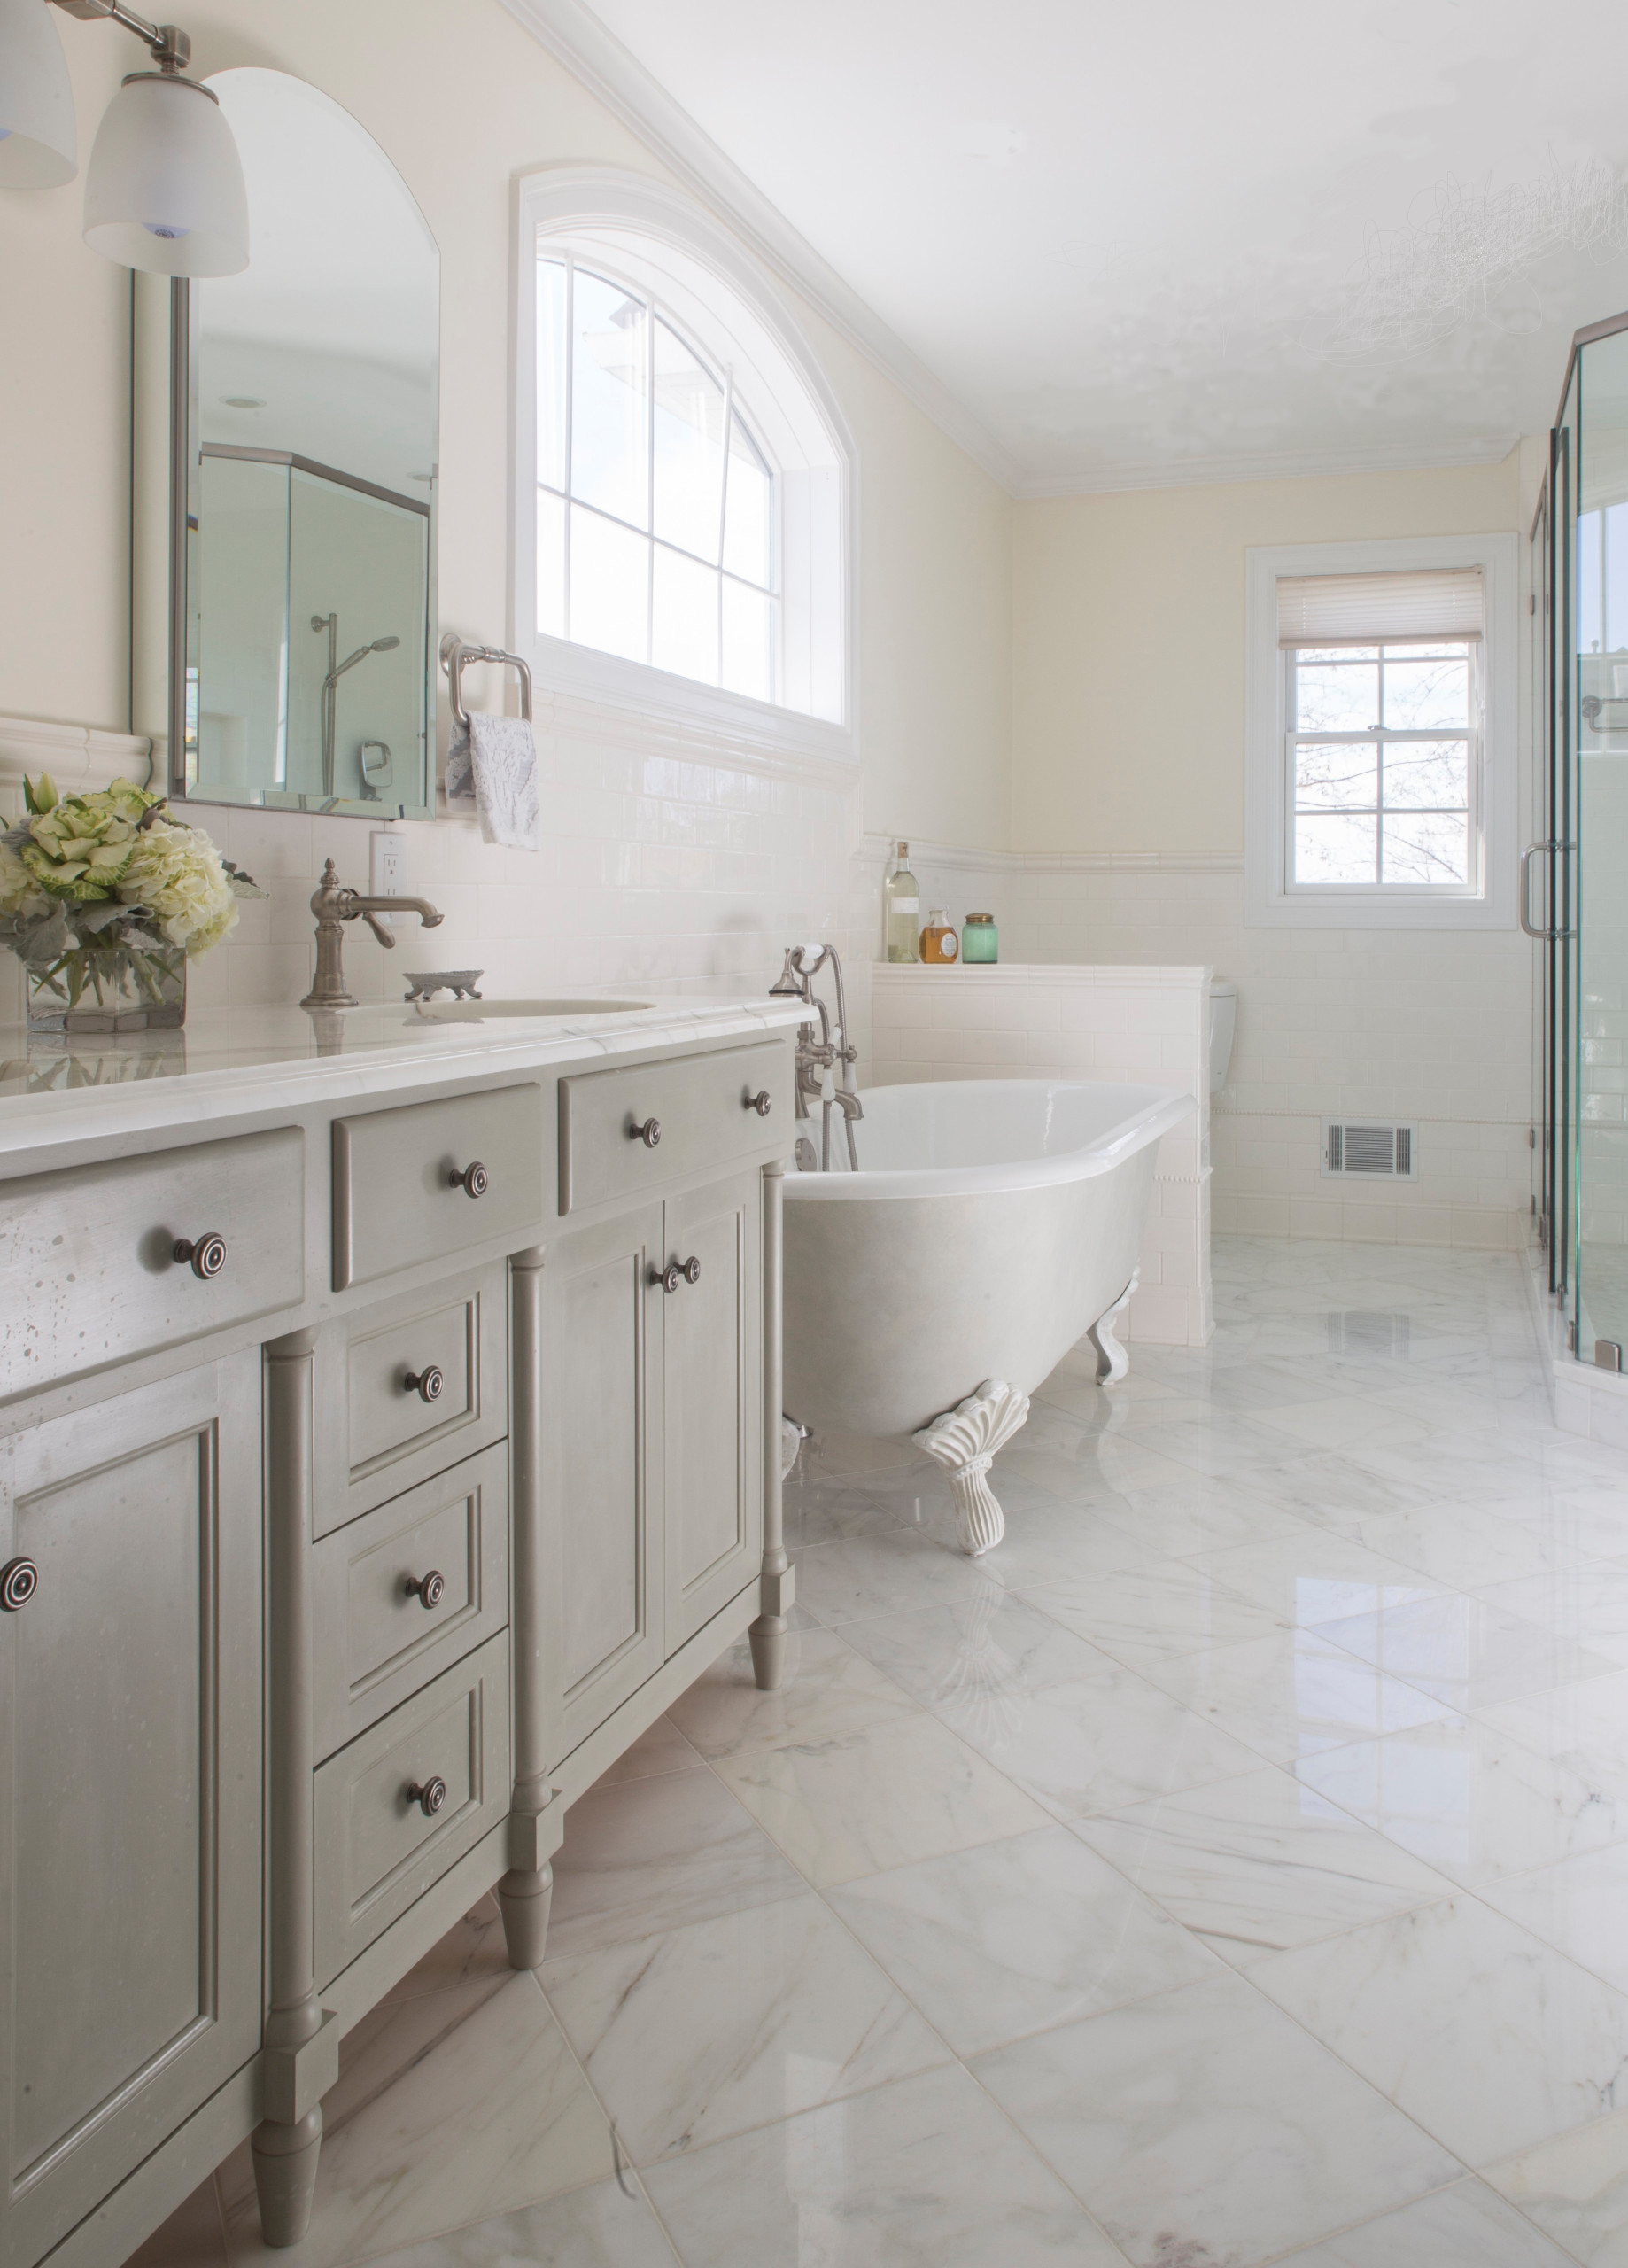 75 Beautiful French Country Bathroom Pictures Ideas February 2021 Houzz